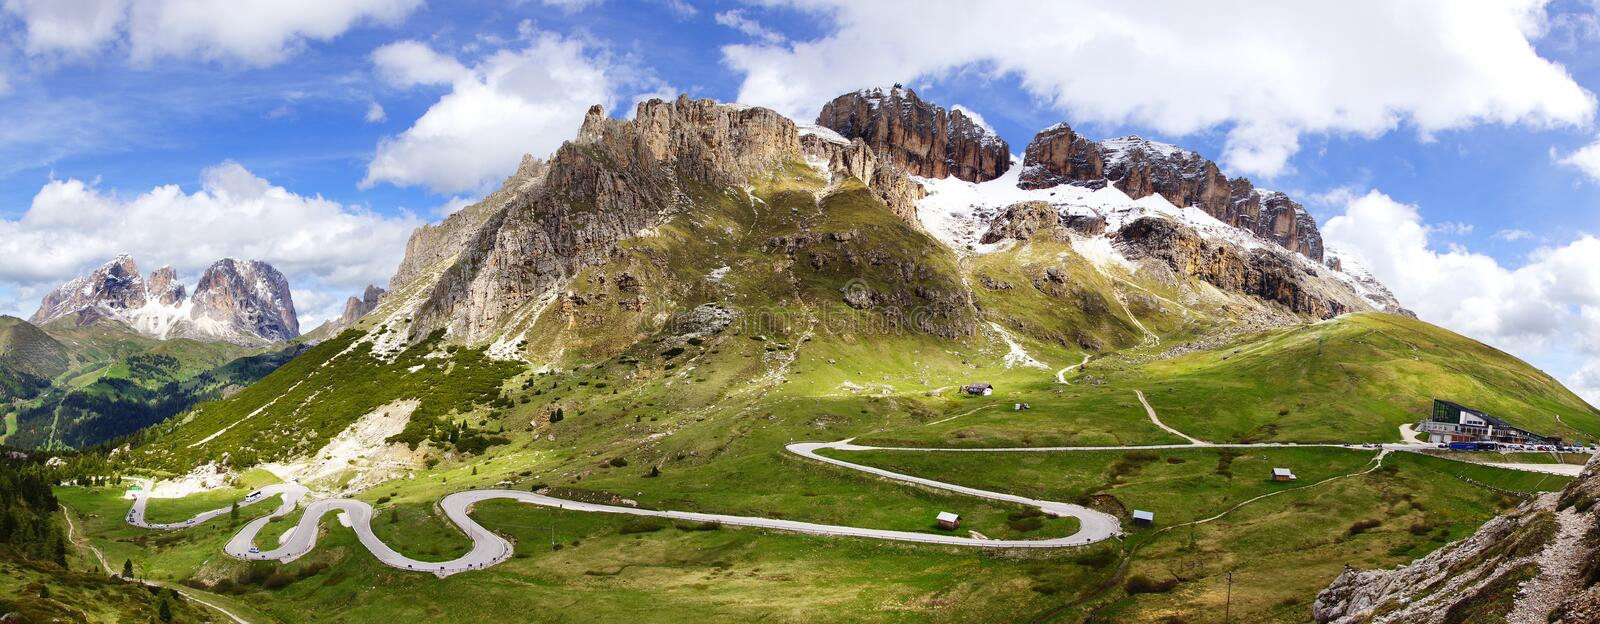 Dolomites landscape with mountain road. stock photo